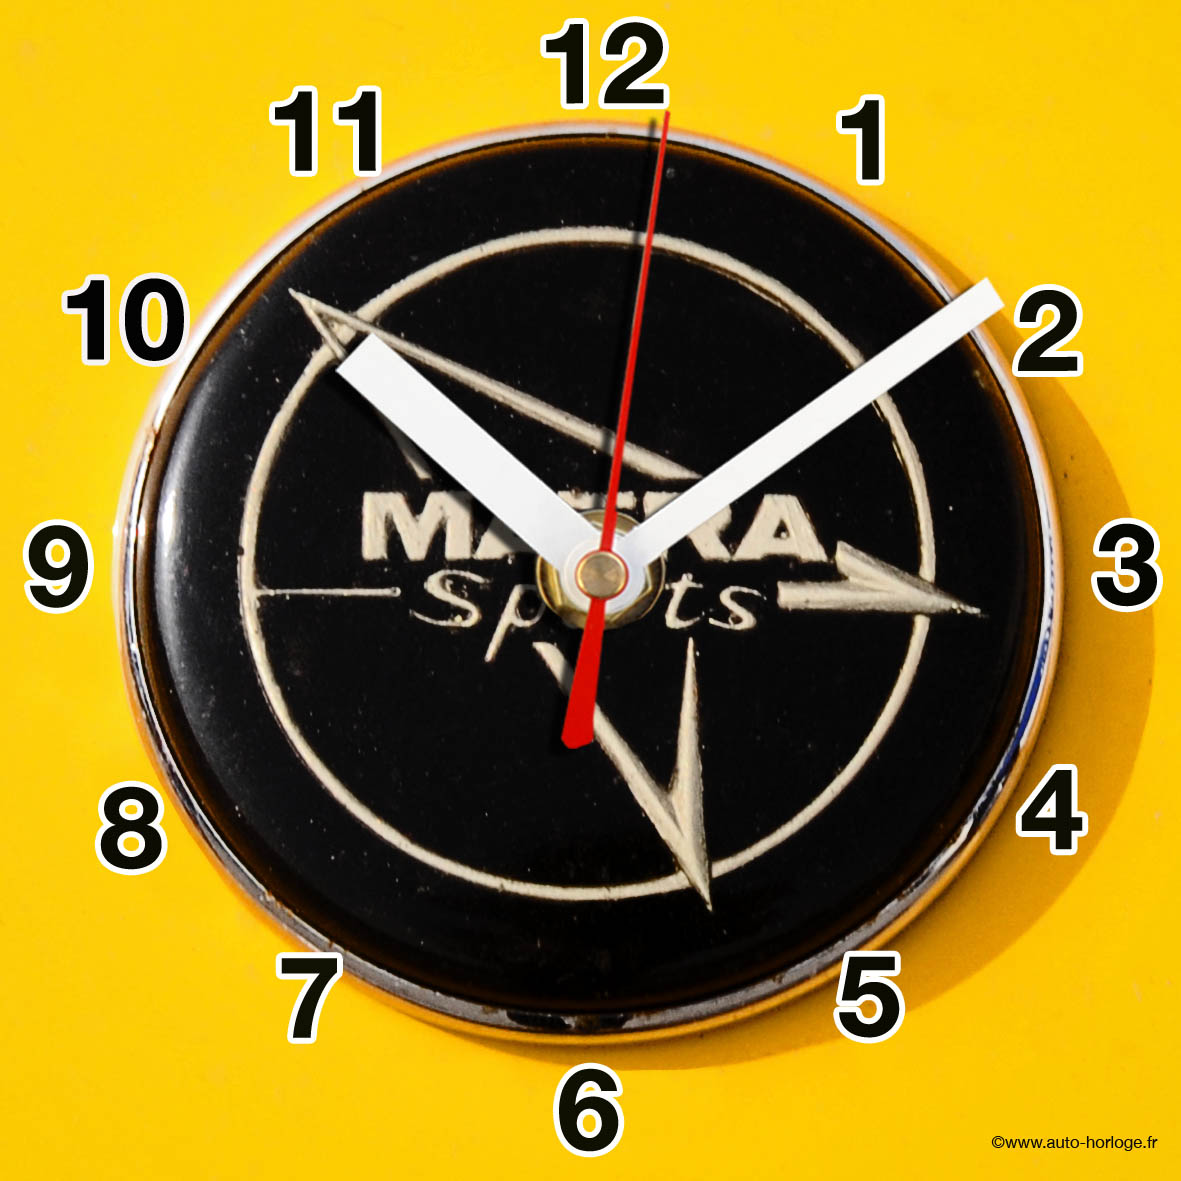 logo matra sport en horloge murale sur carosserie jaune. Black Bedroom Furniture Sets. Home Design Ideas